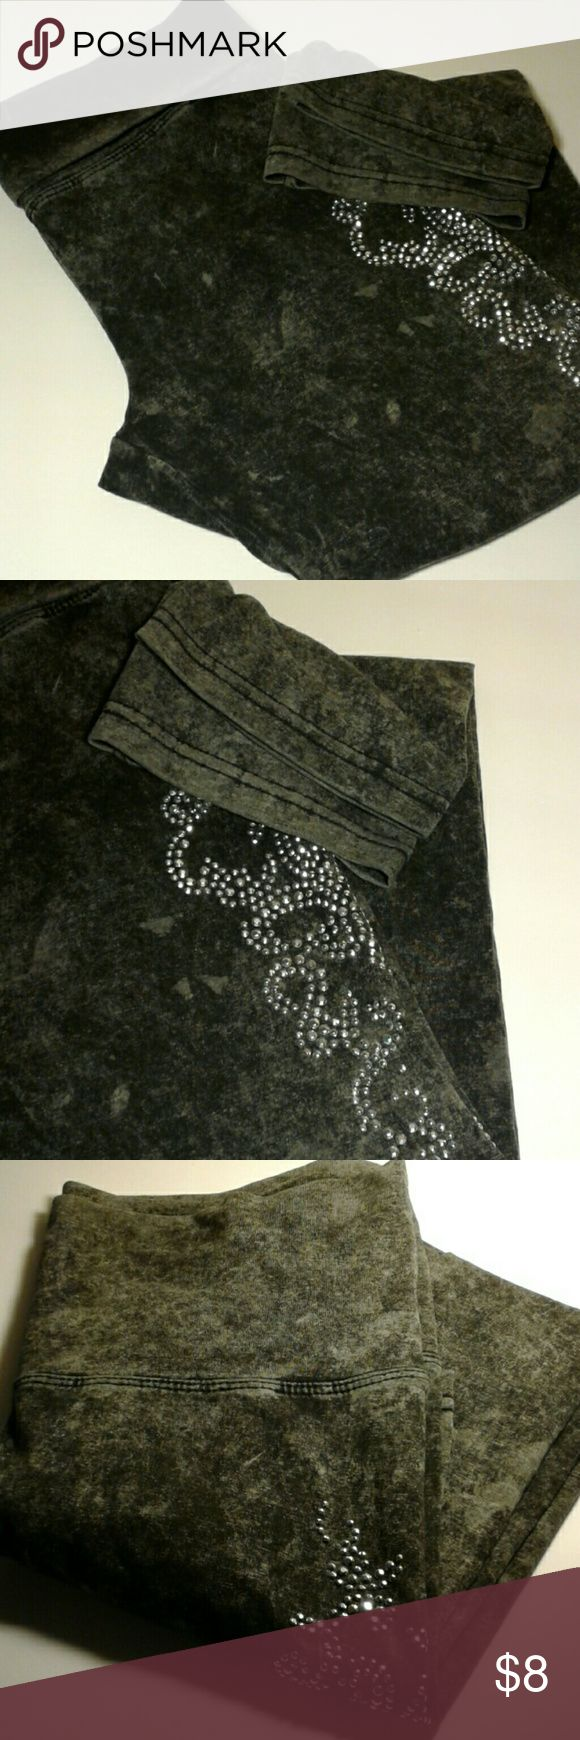 Leggings,  Ladies Size L,  PARIS ANGEL Pre Owned, gently used and in good condition...  Jersey soft leggings, acid wash,  charcoal grey and black...  62% Cotton,  33% Polyester and 5% Spandez  Faux rhinestones  28 Waist and 21 1/2 Inseam  All questions welcomed and thank you for looking. Paris Angel Pants Leggings